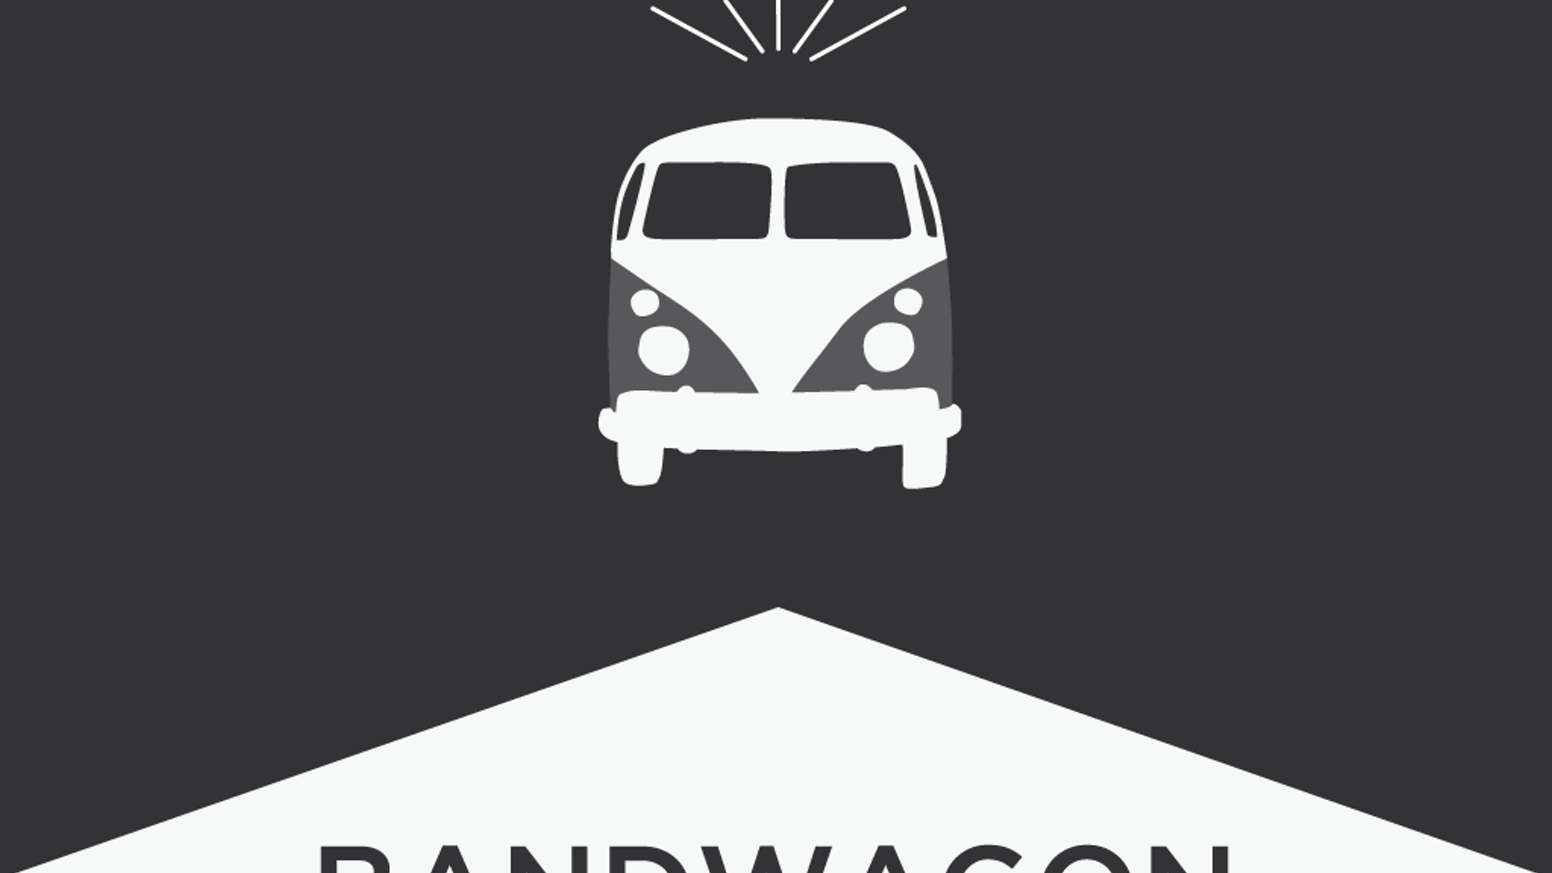 A podcast about being a part of something bigger than yourself. Each season features stories about a different type of bandwagon. Season 1 follows the followers of the Bernie Sanders Campaign.